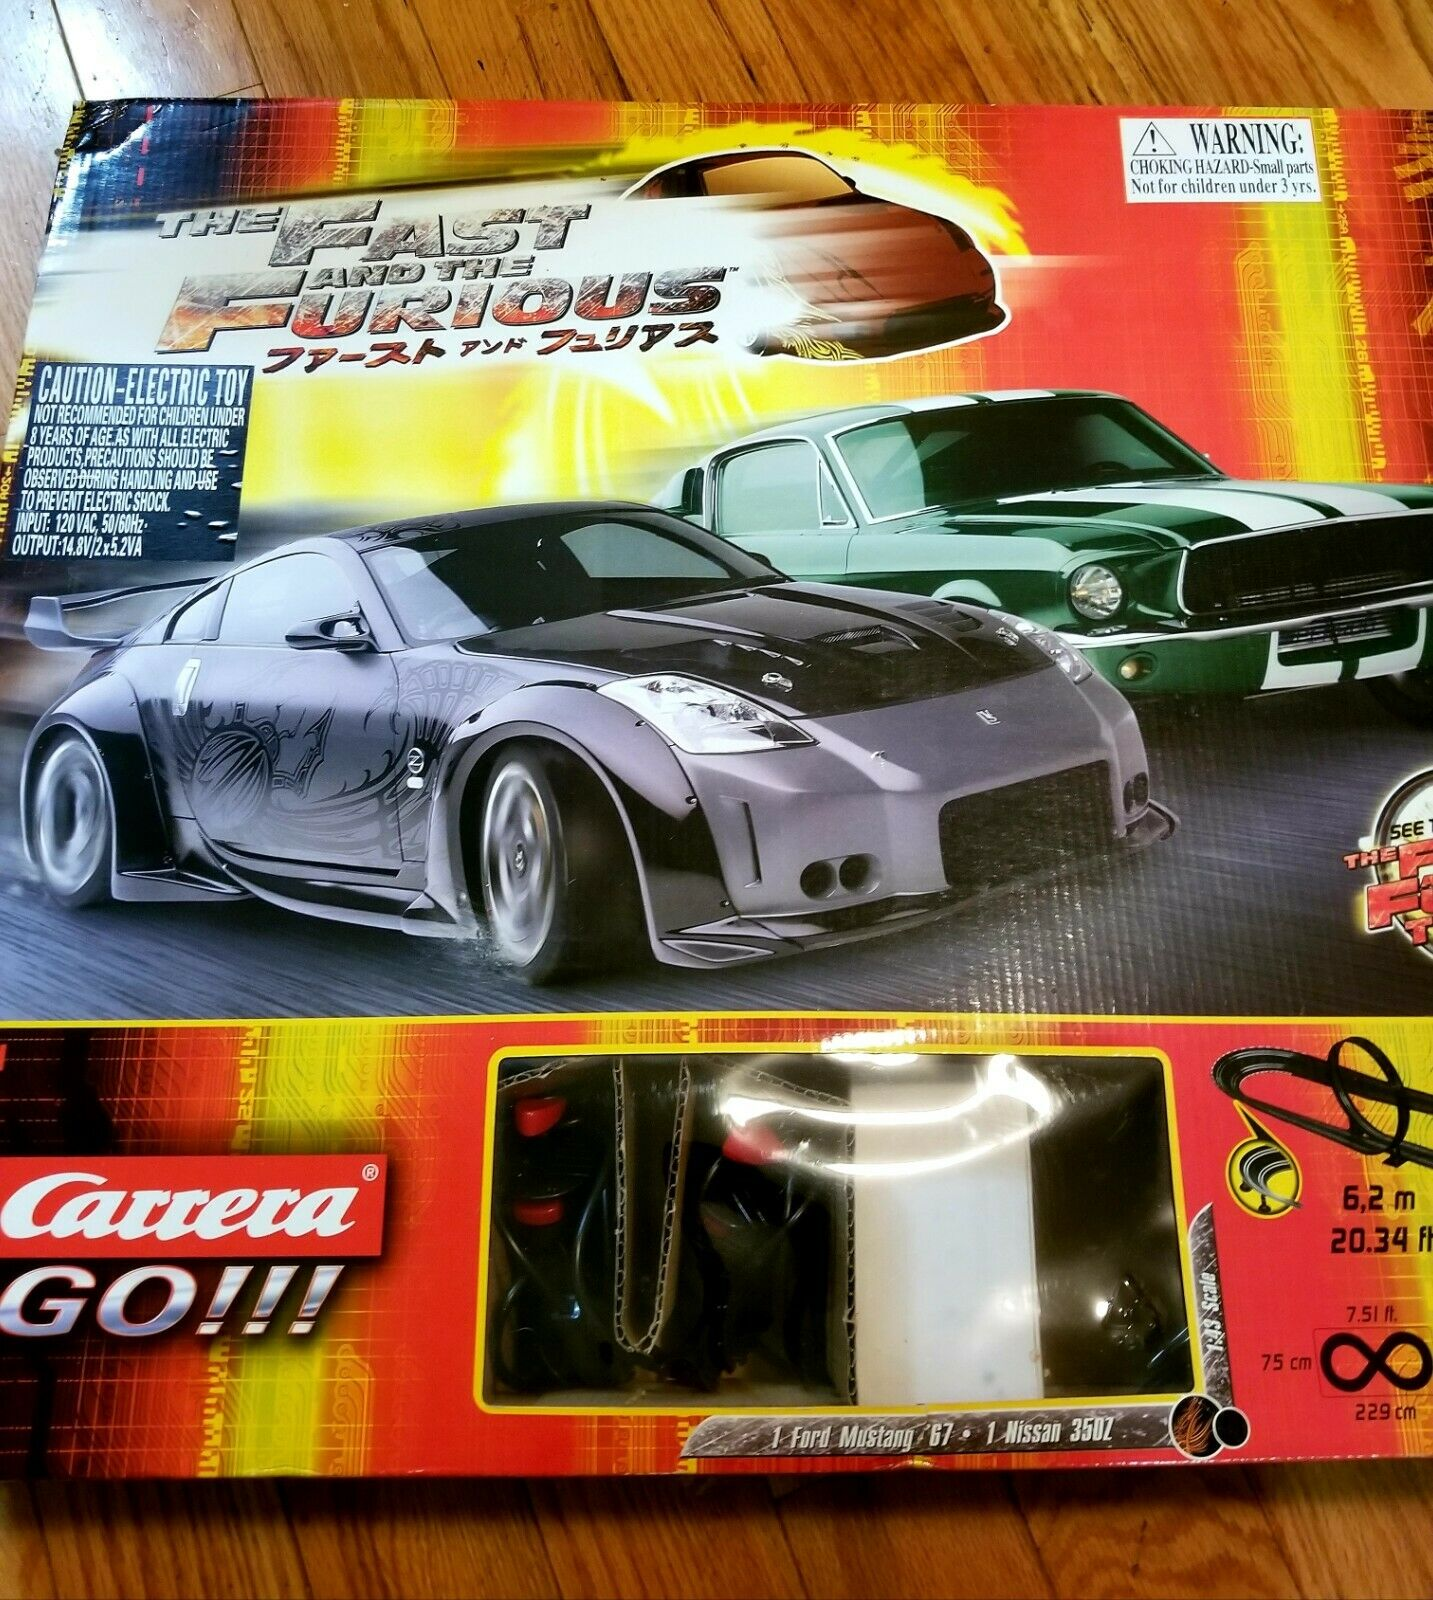 Carrera GO  FAST AND THE FURIOUS Tokyo Drift 1 43 Slot Car Racetrack mustang & Z